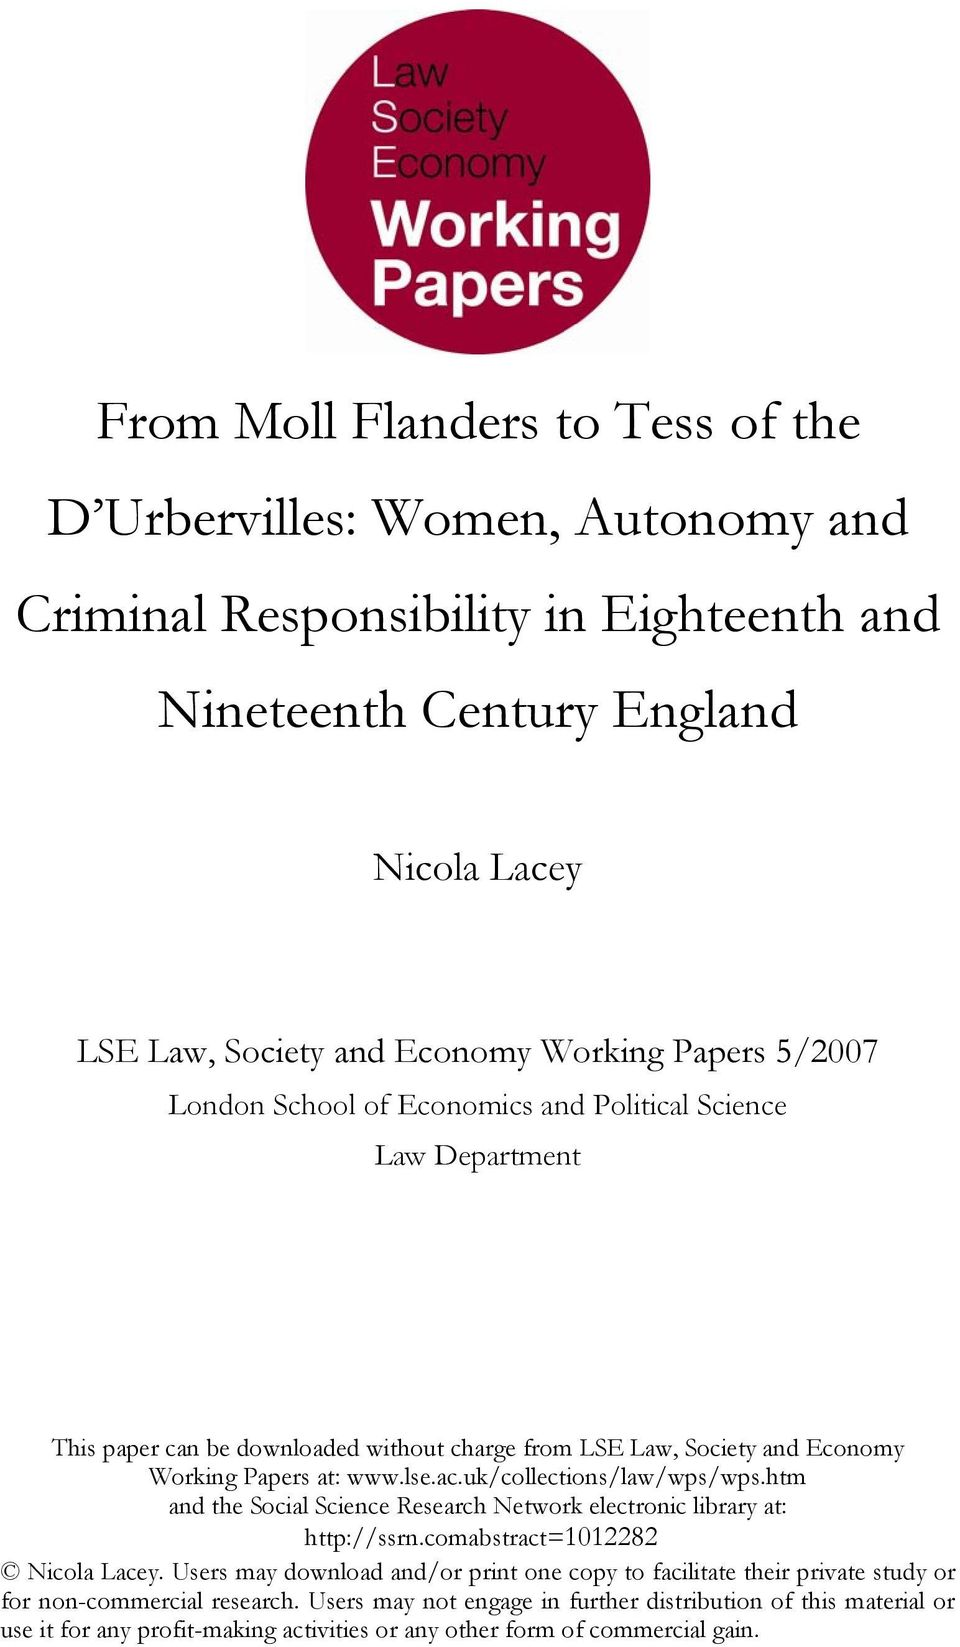 uk/collections/law/wps/wps.htm and the Social Science Research Network electronic library at: http://ssrn.comabstract=1012282 Nicola Lacey.